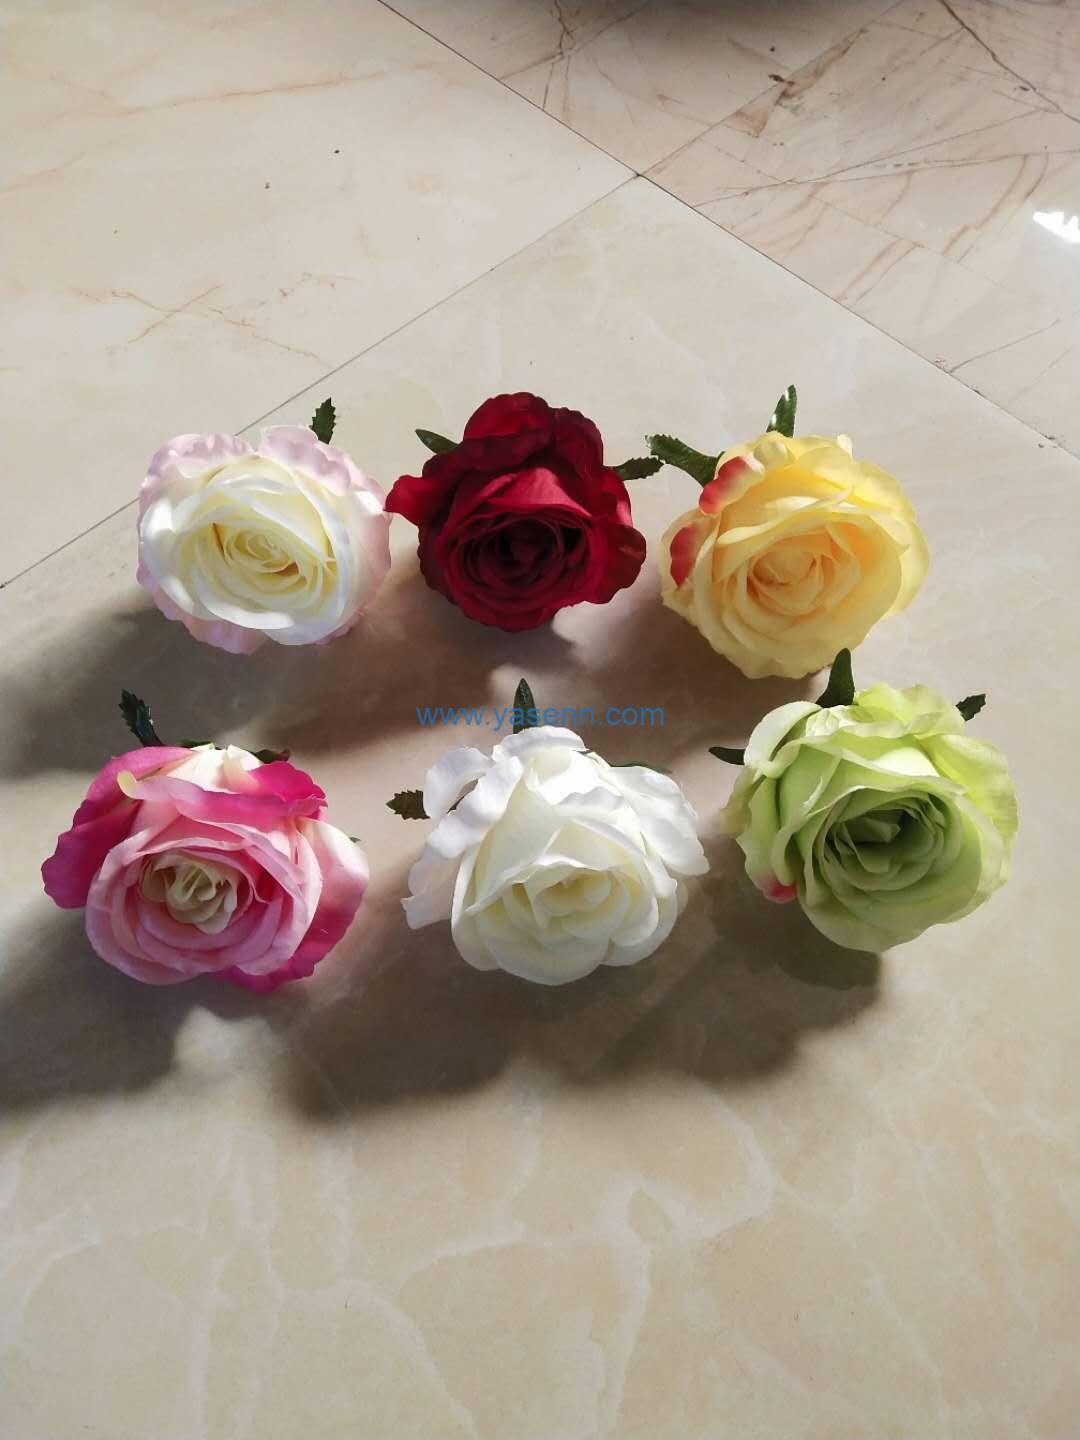 Artificial Bouquet Single Rose Party Home Hotel Office Decoration Wedding Balcony Decor